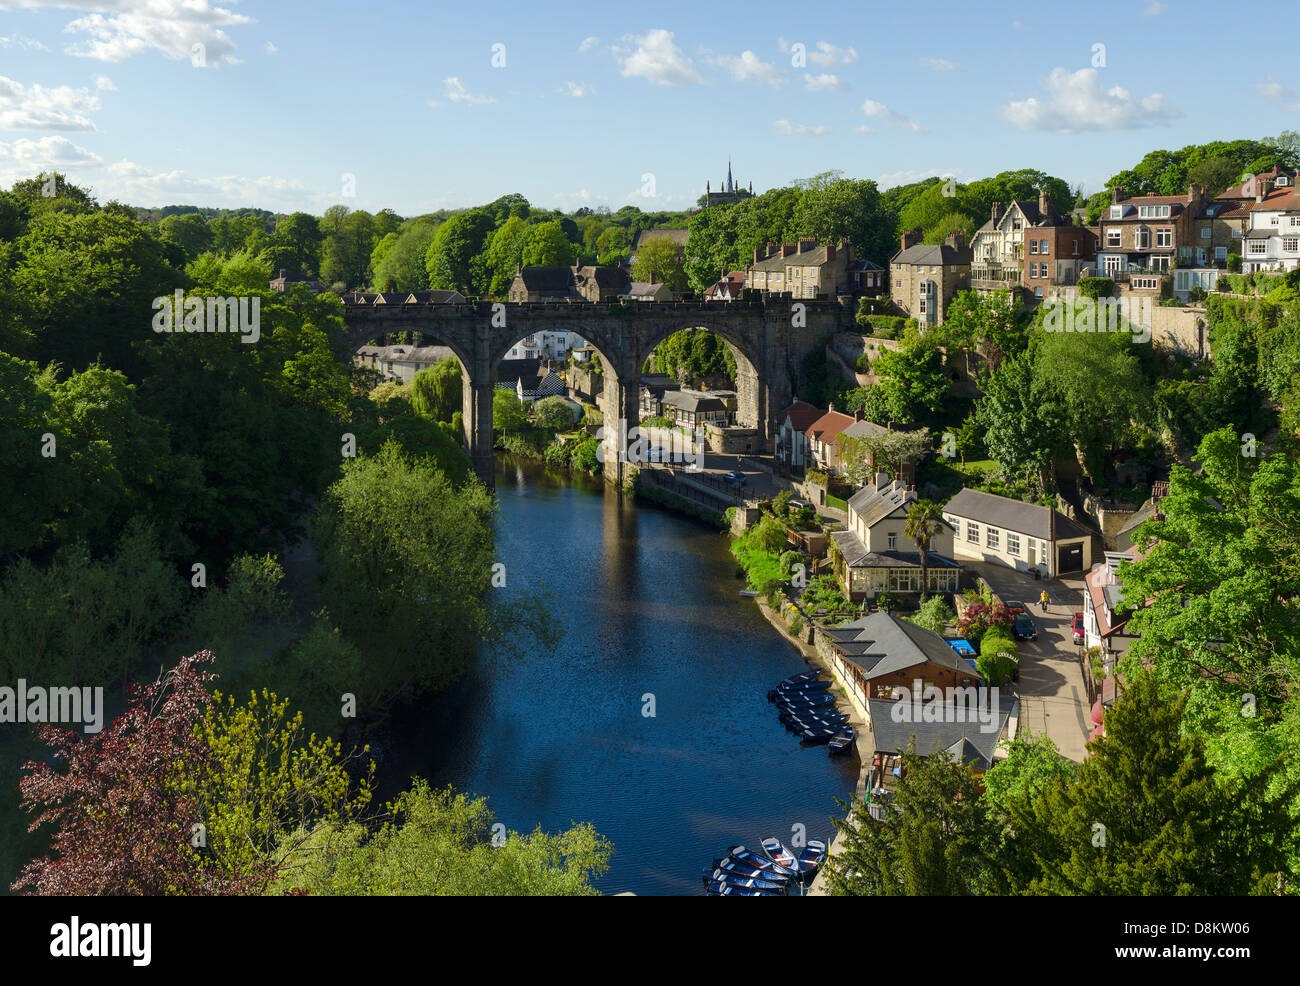 Knaresborough Viaduct - Stock Image